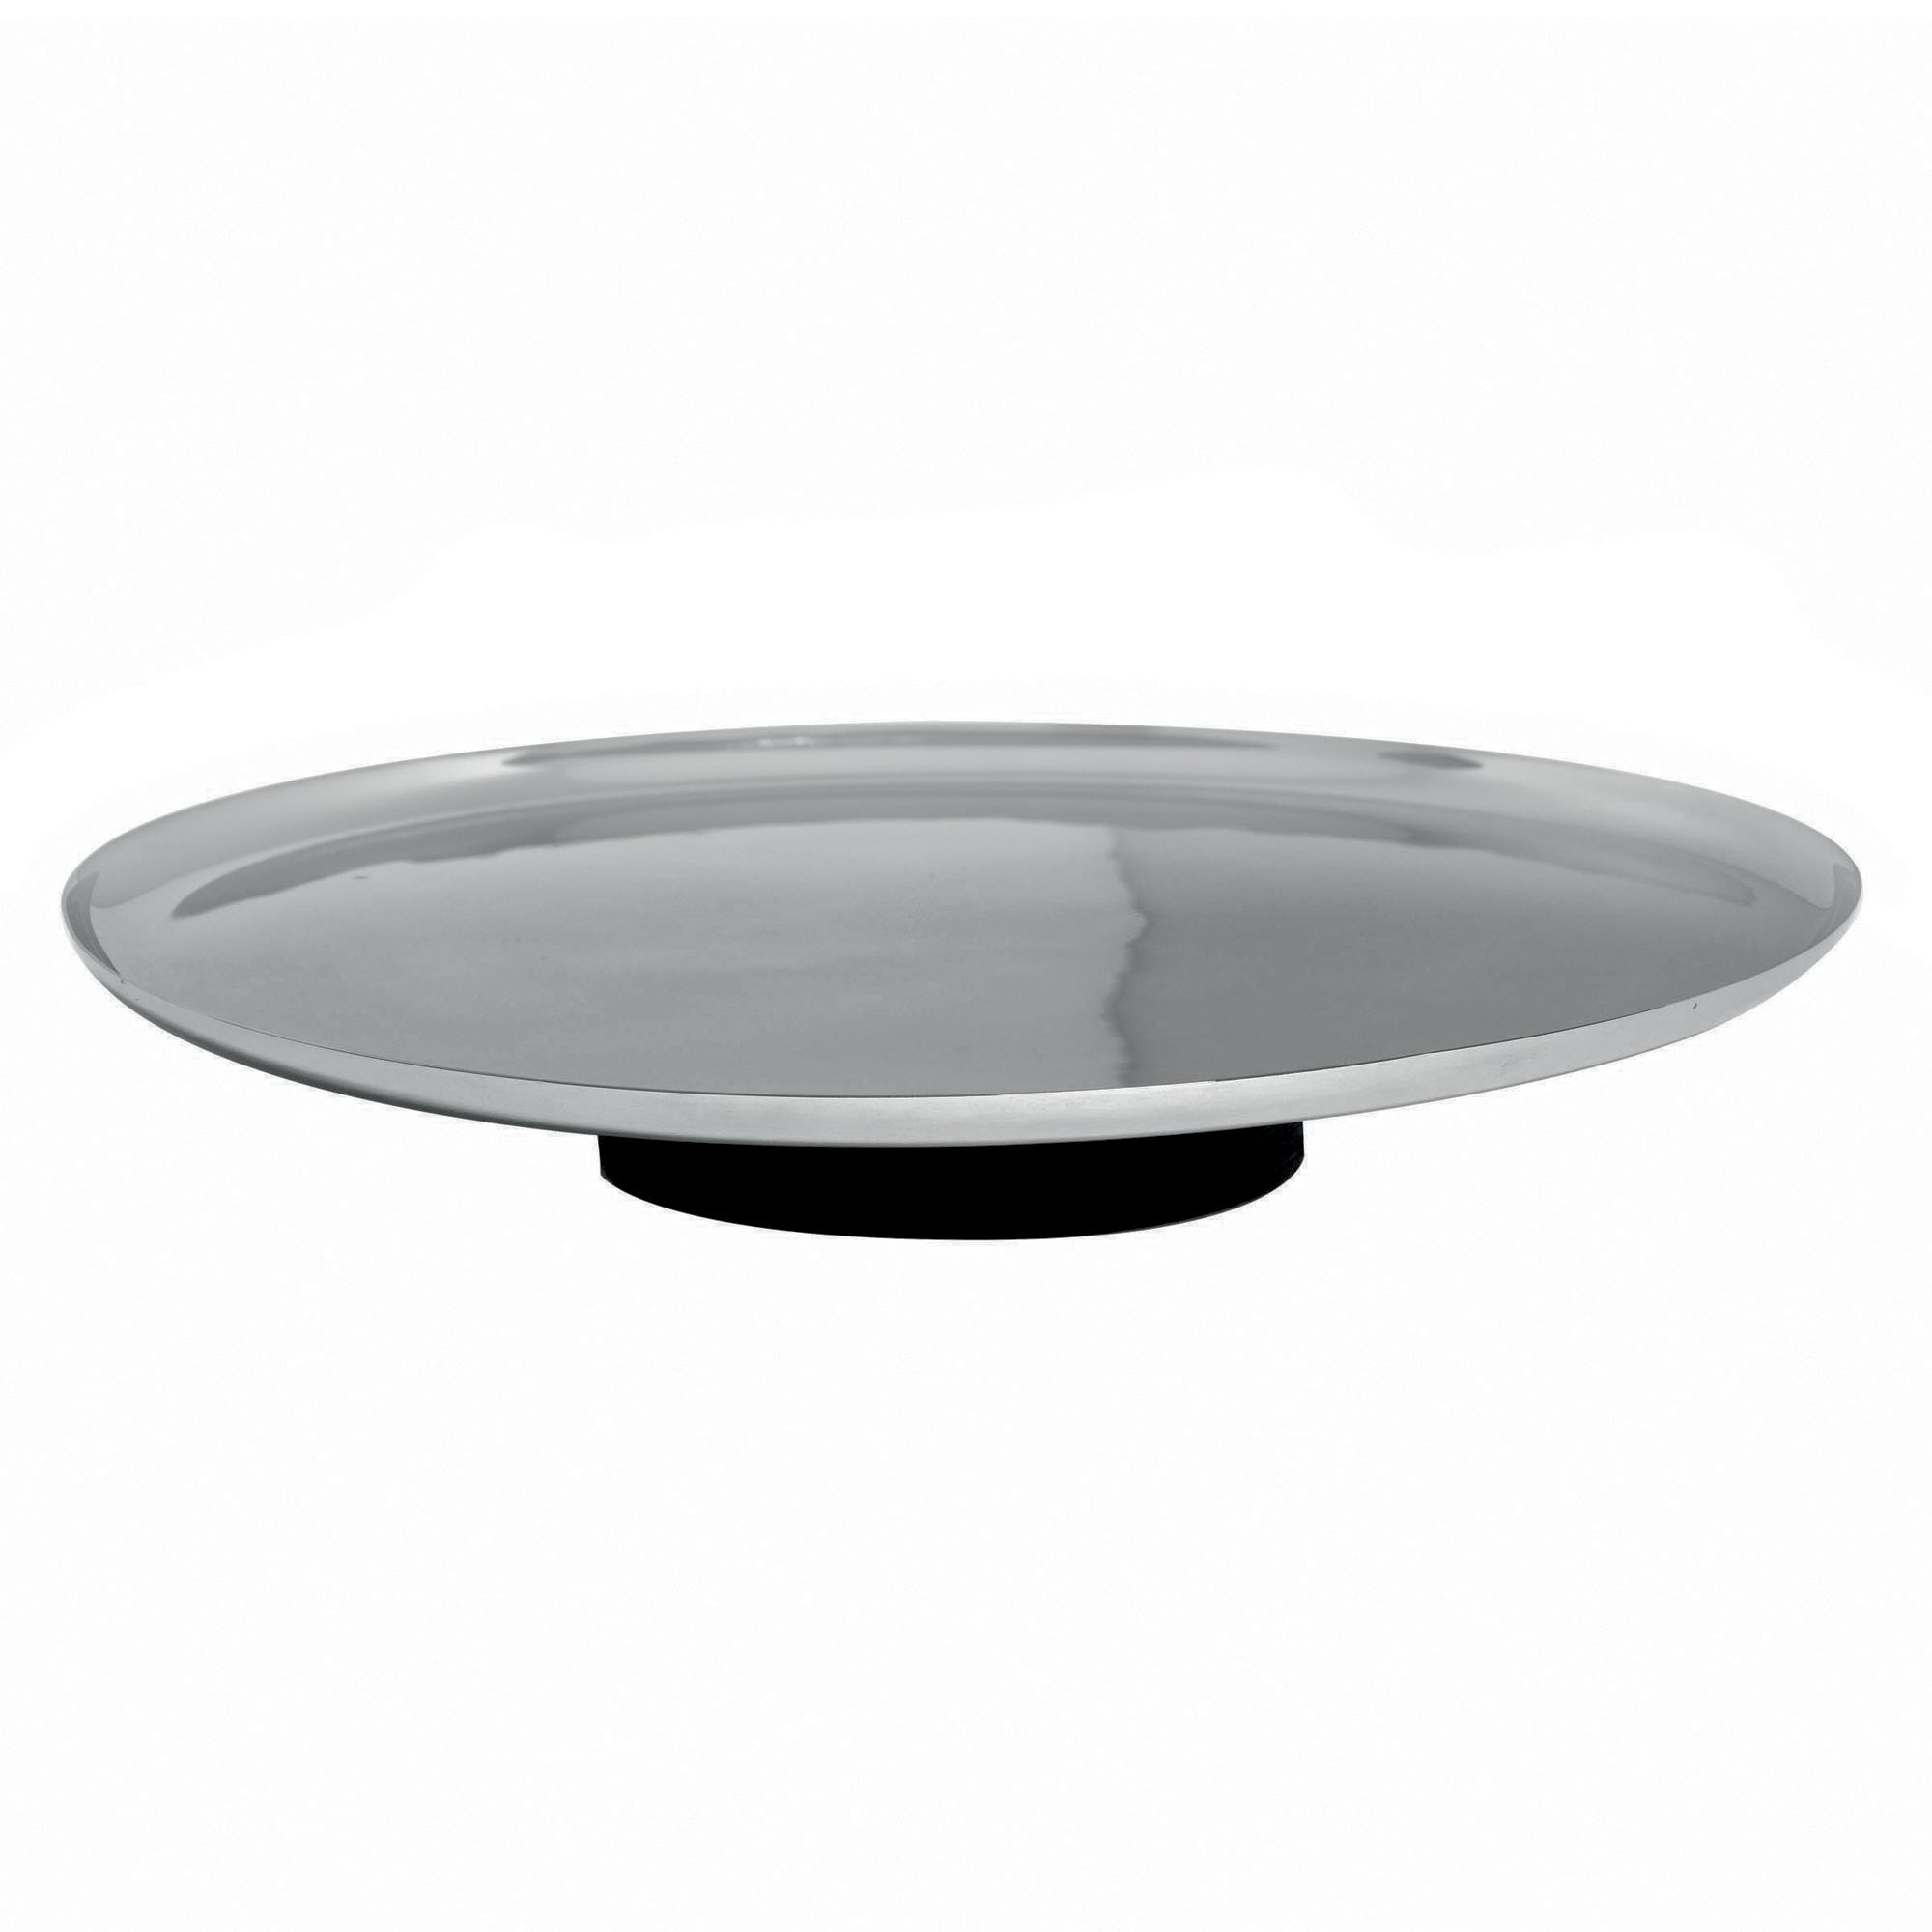 Elements Footed 25 cm Cake Plate